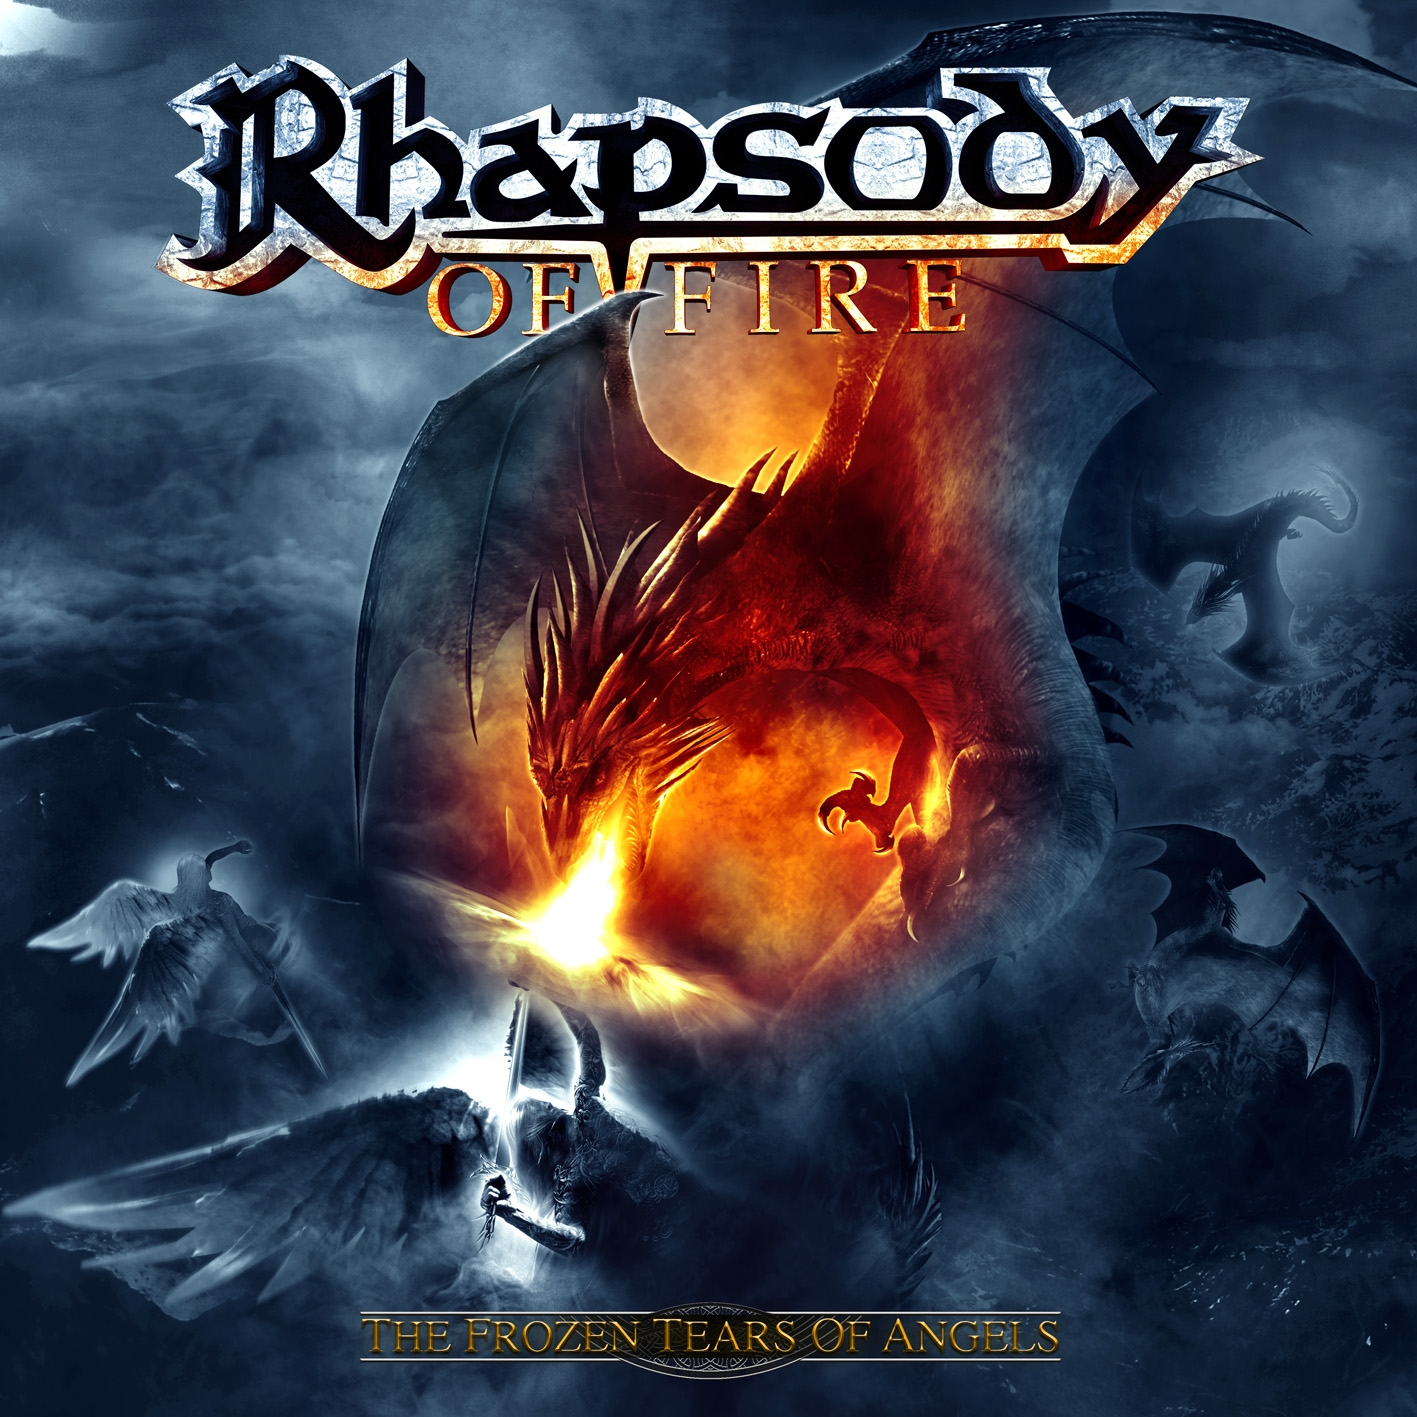 Rhapsody of Fire – The Frozen Tears of Angels Review